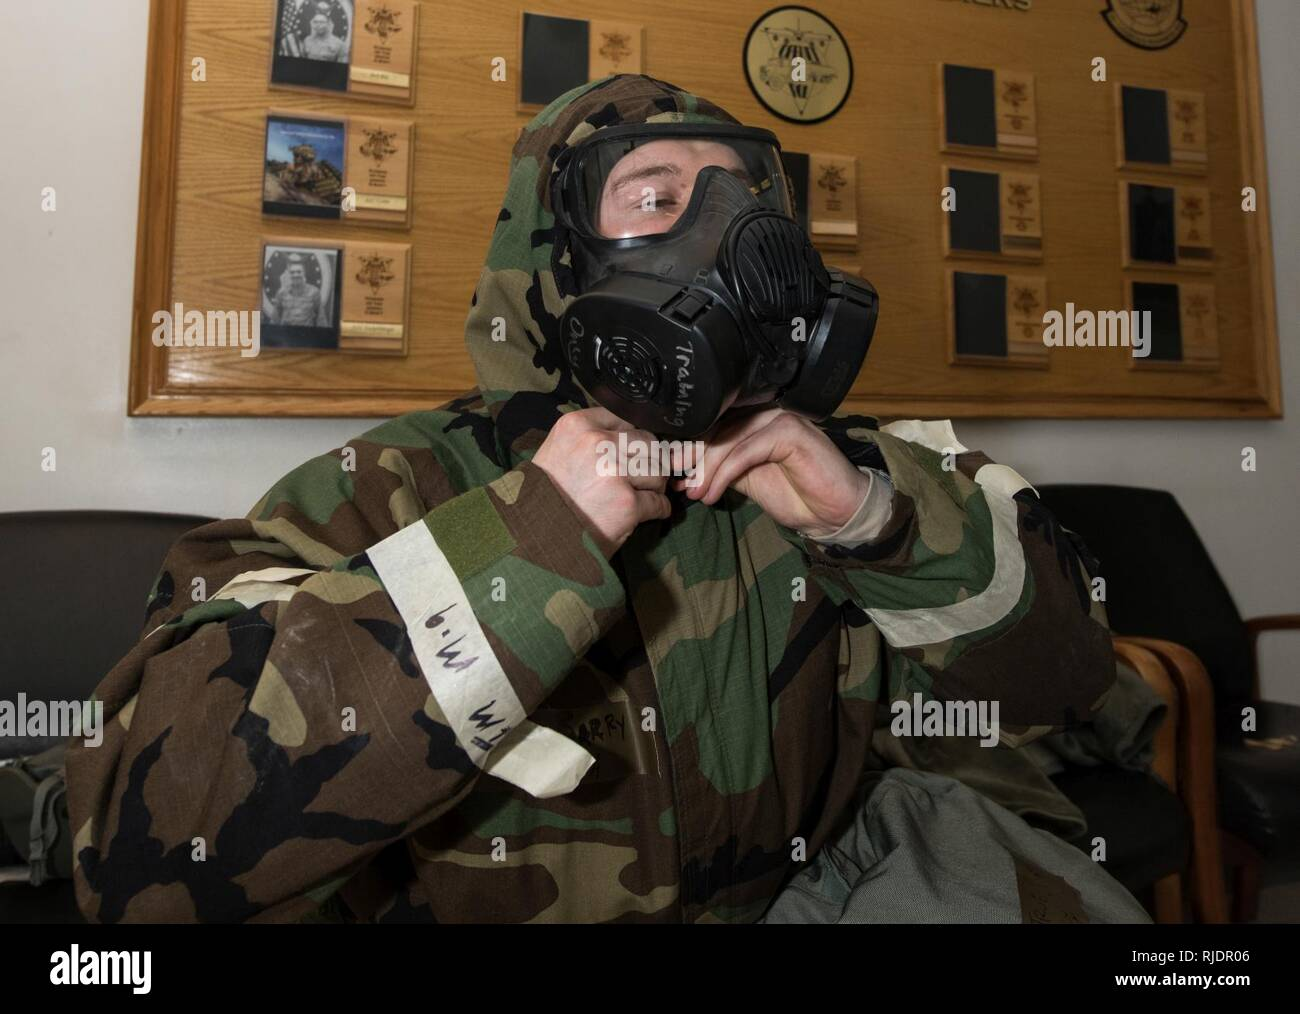 Senior Airman Barry Troe, 55th Logistics Readiness Squadron Fuels Management Flight distribution operator, dons his chemical protection overgarment (CPO) during an operational readiness exercise at Offutt Air Force Base, Nebraska, Jan. 23, 2018. The CPO is paired with an M50 Joint Service General Purpose mask and protective boots and gloves to protect against chemical, biological, radiological and nuclear hazards. - Stock Image